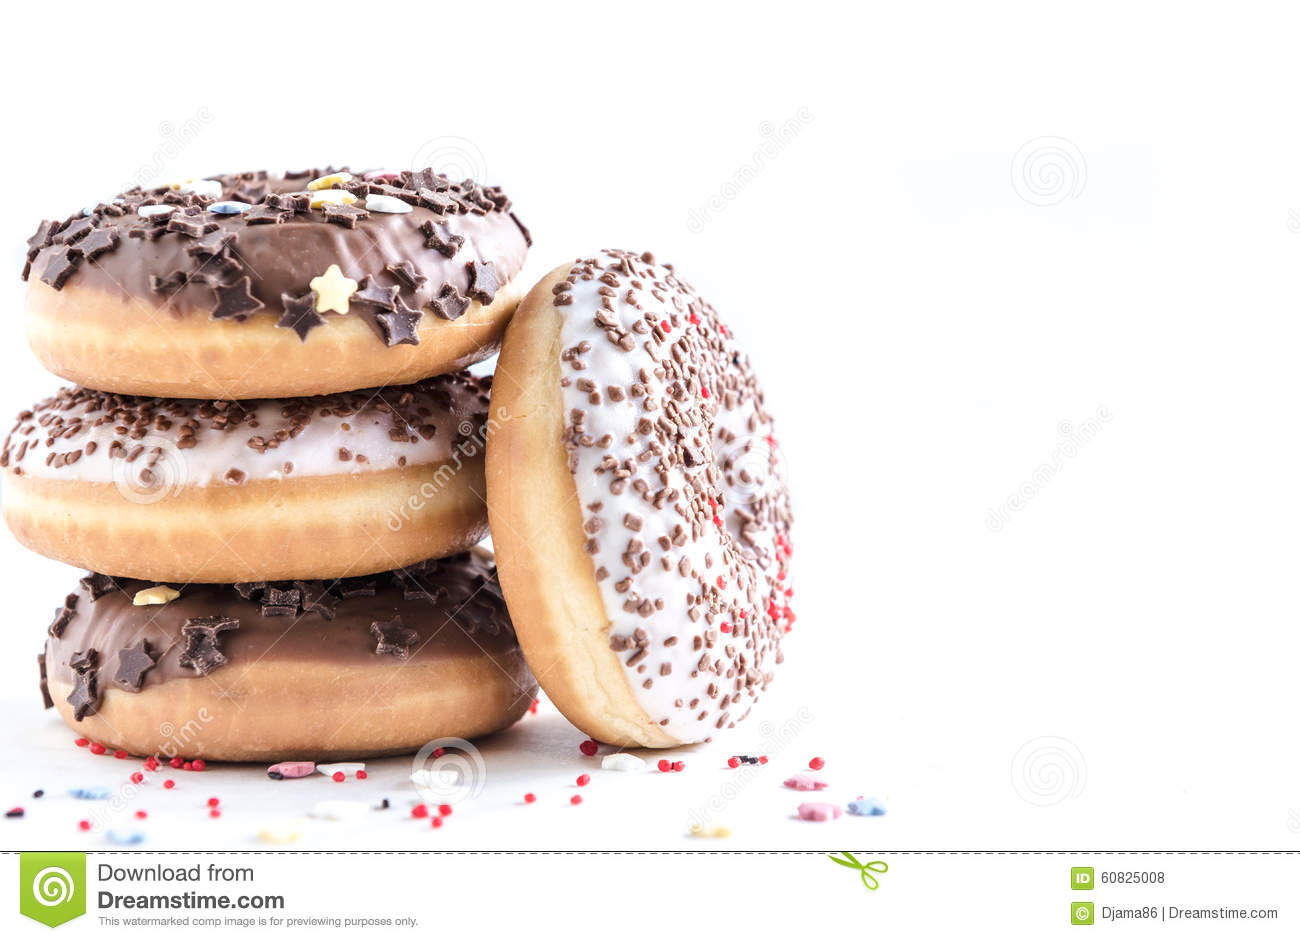 American chocolate donuts